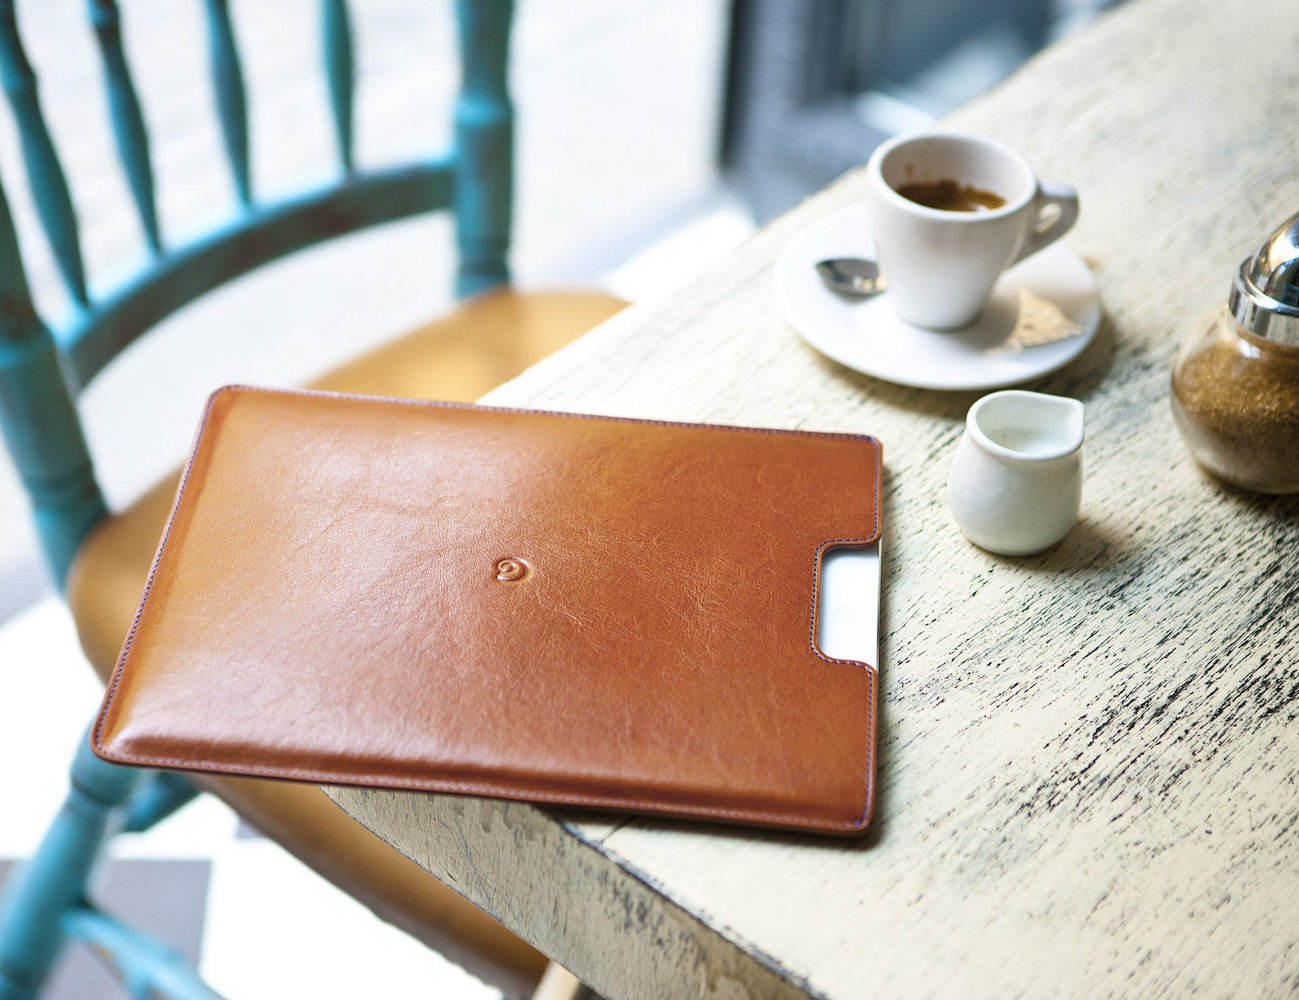 leather-ipad-sleeve-by-danny-p-01